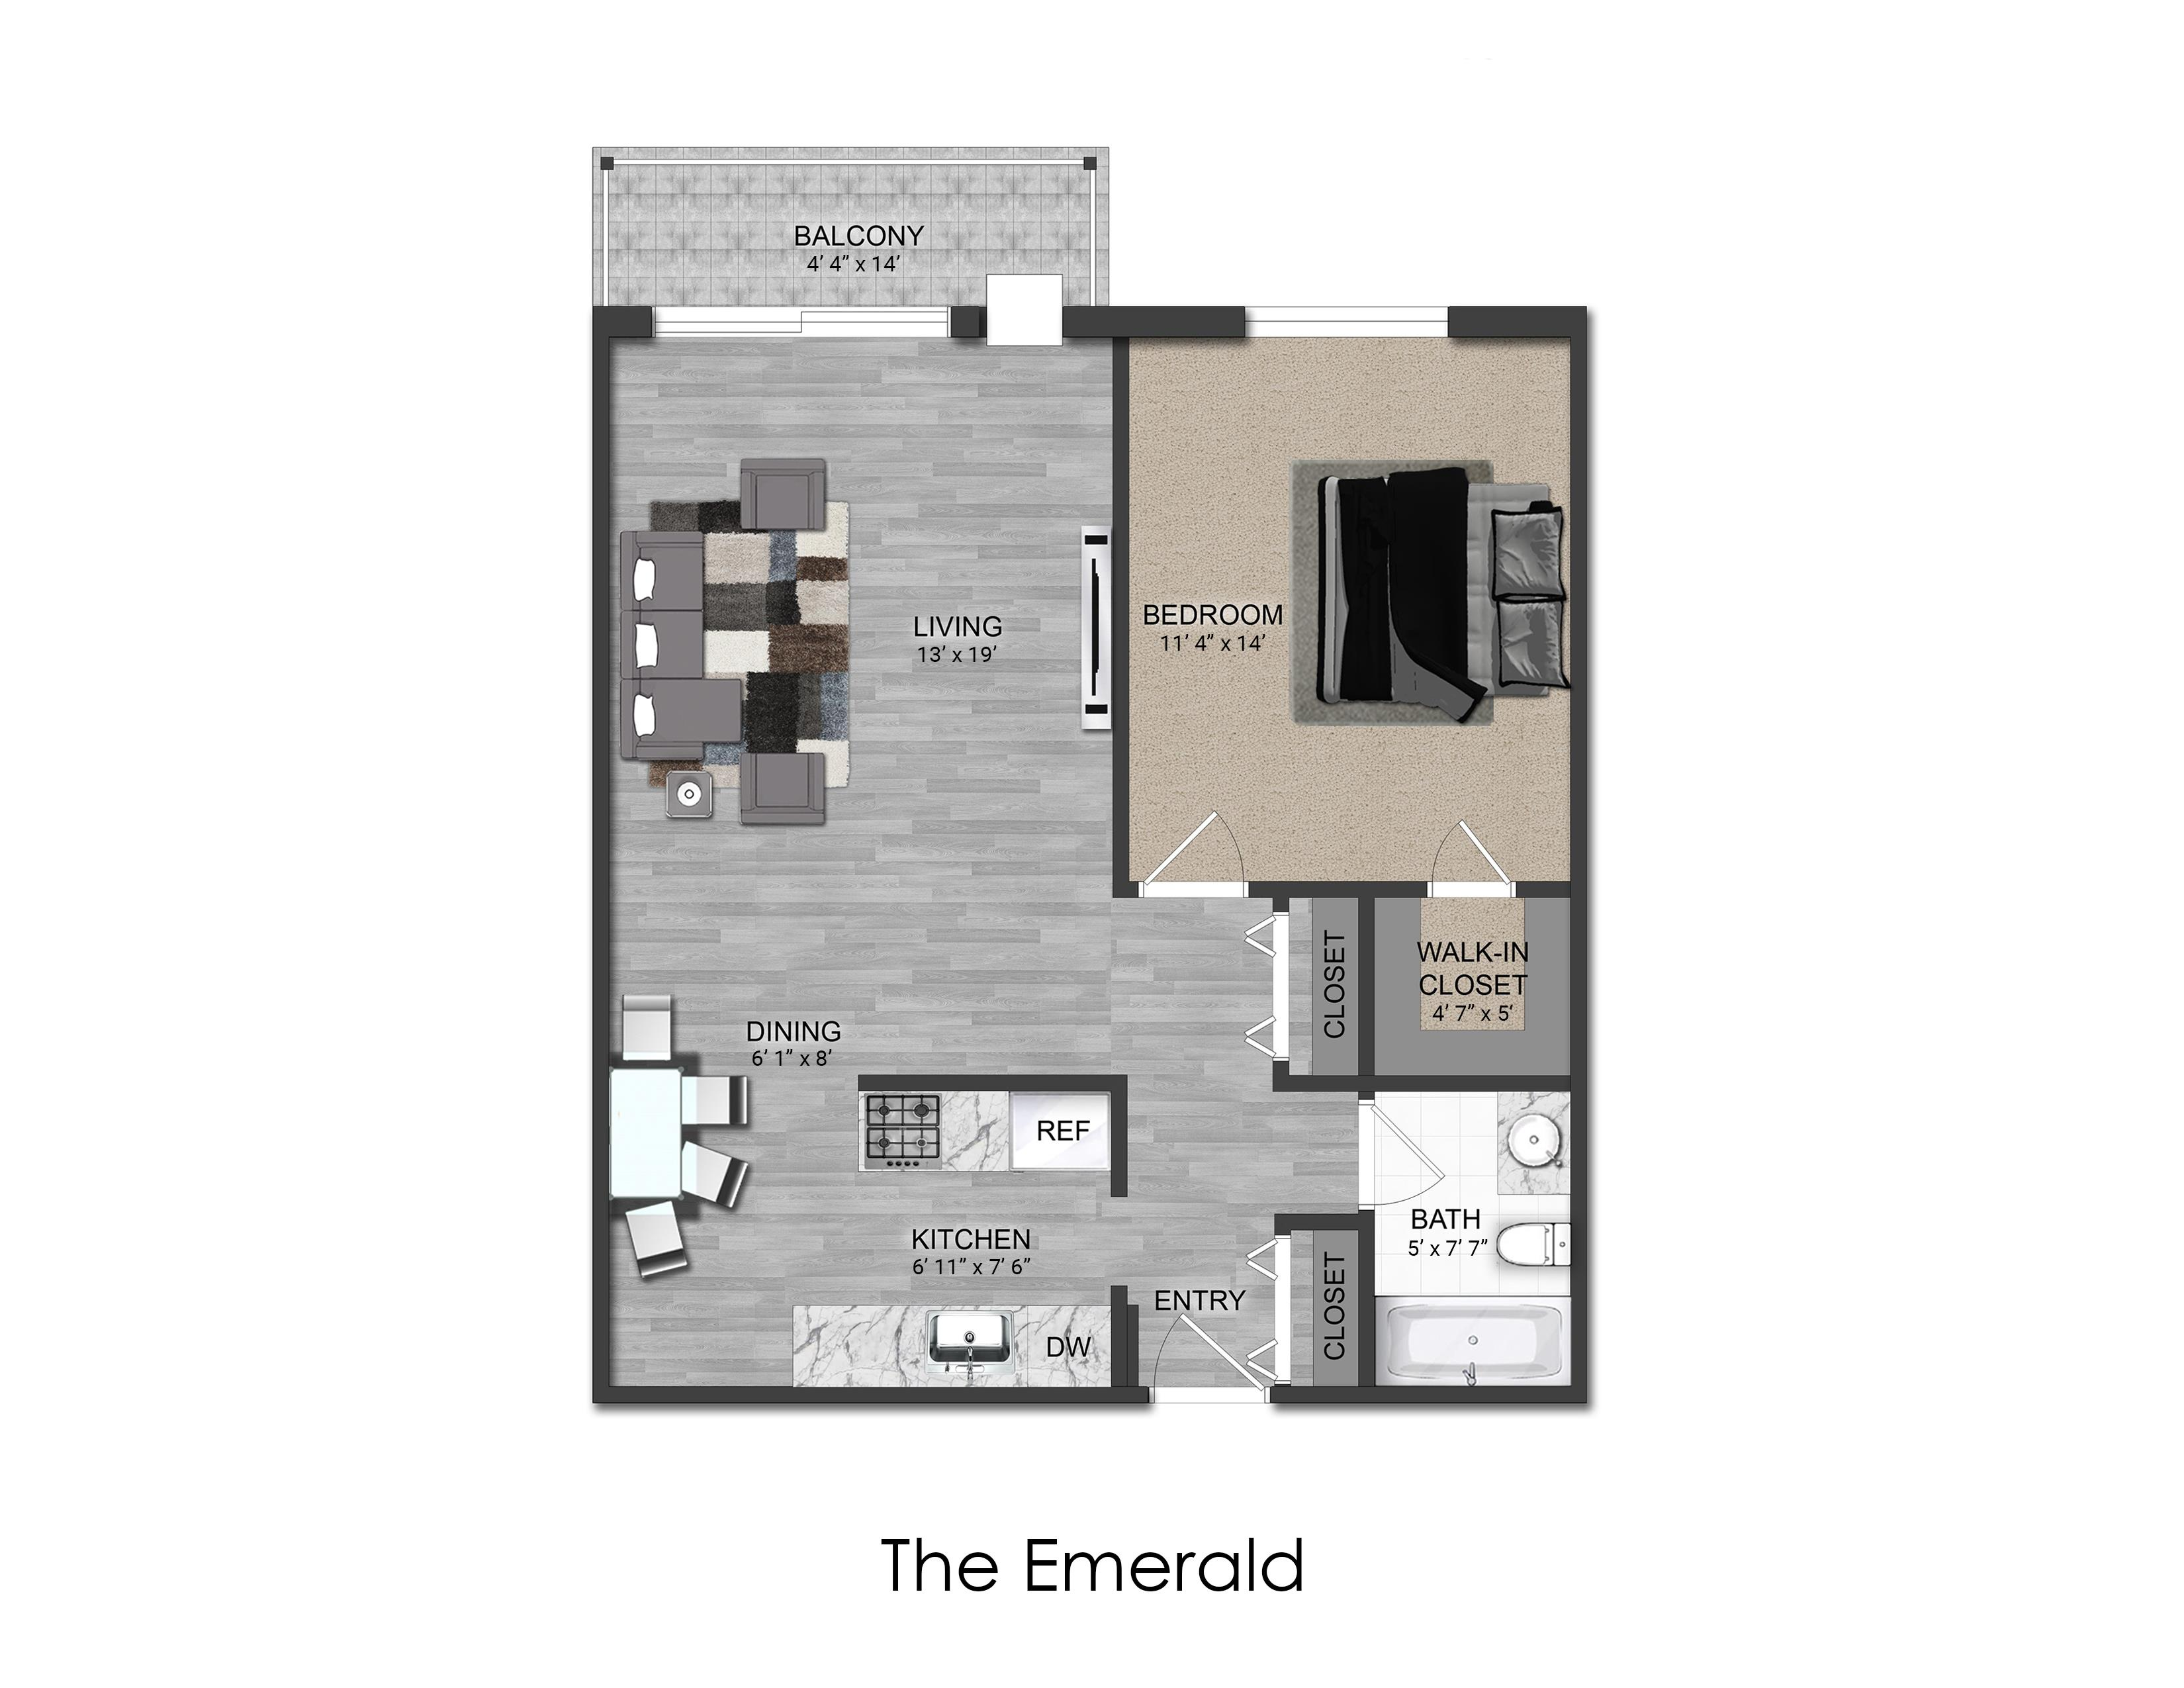 Image of 7601 32nd Ave N, # 108